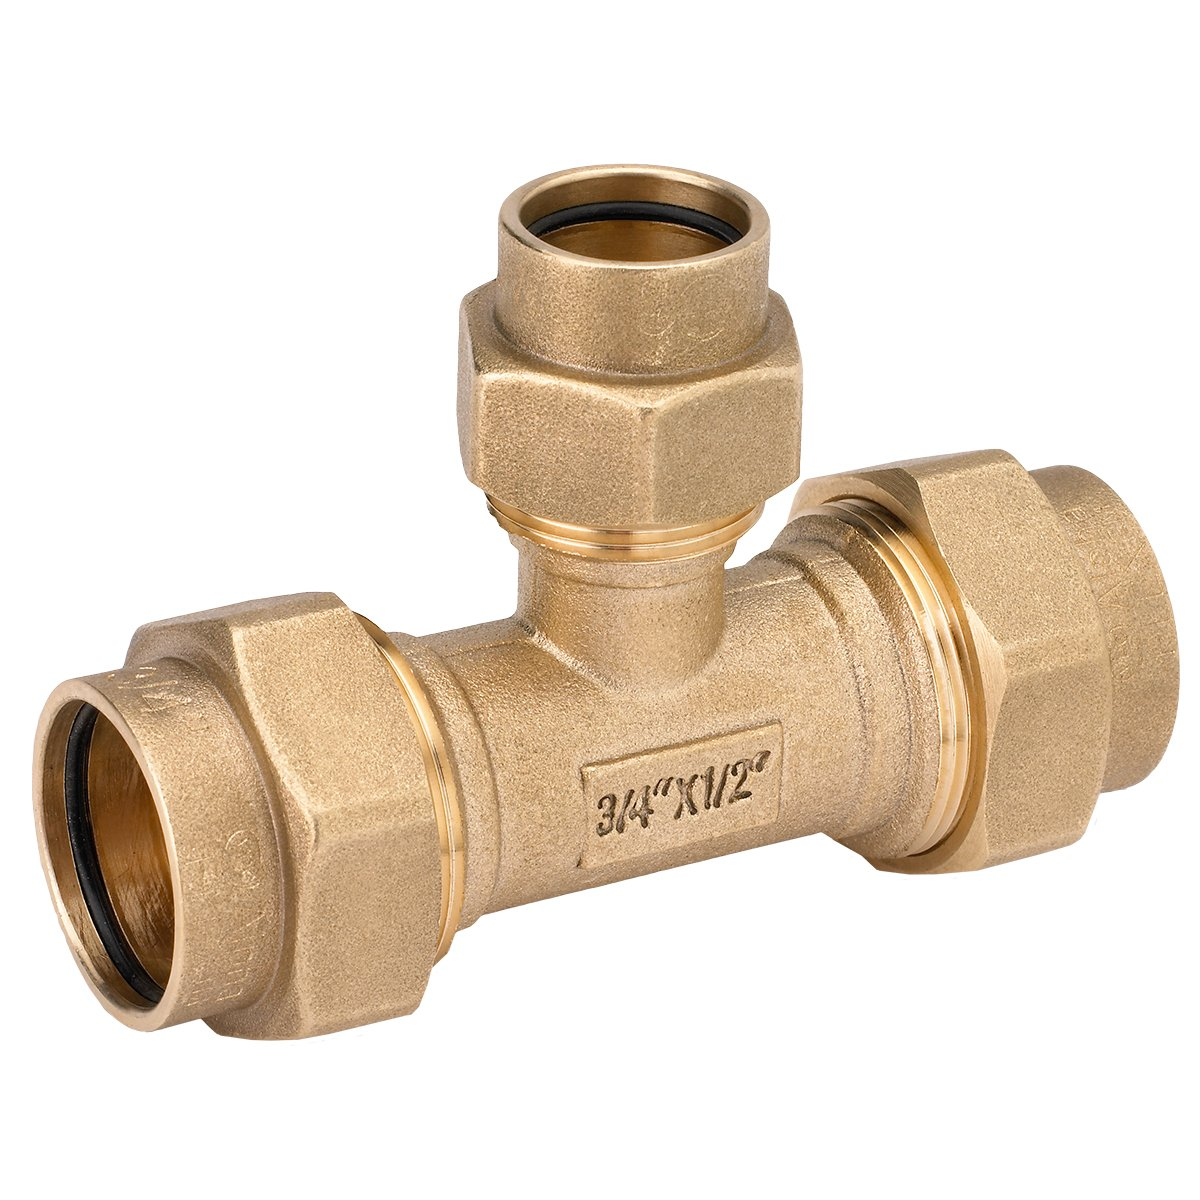 HOME-FLEX 3/4 In. X 3/4 In. X 1/2 In. Brass CSST Tee